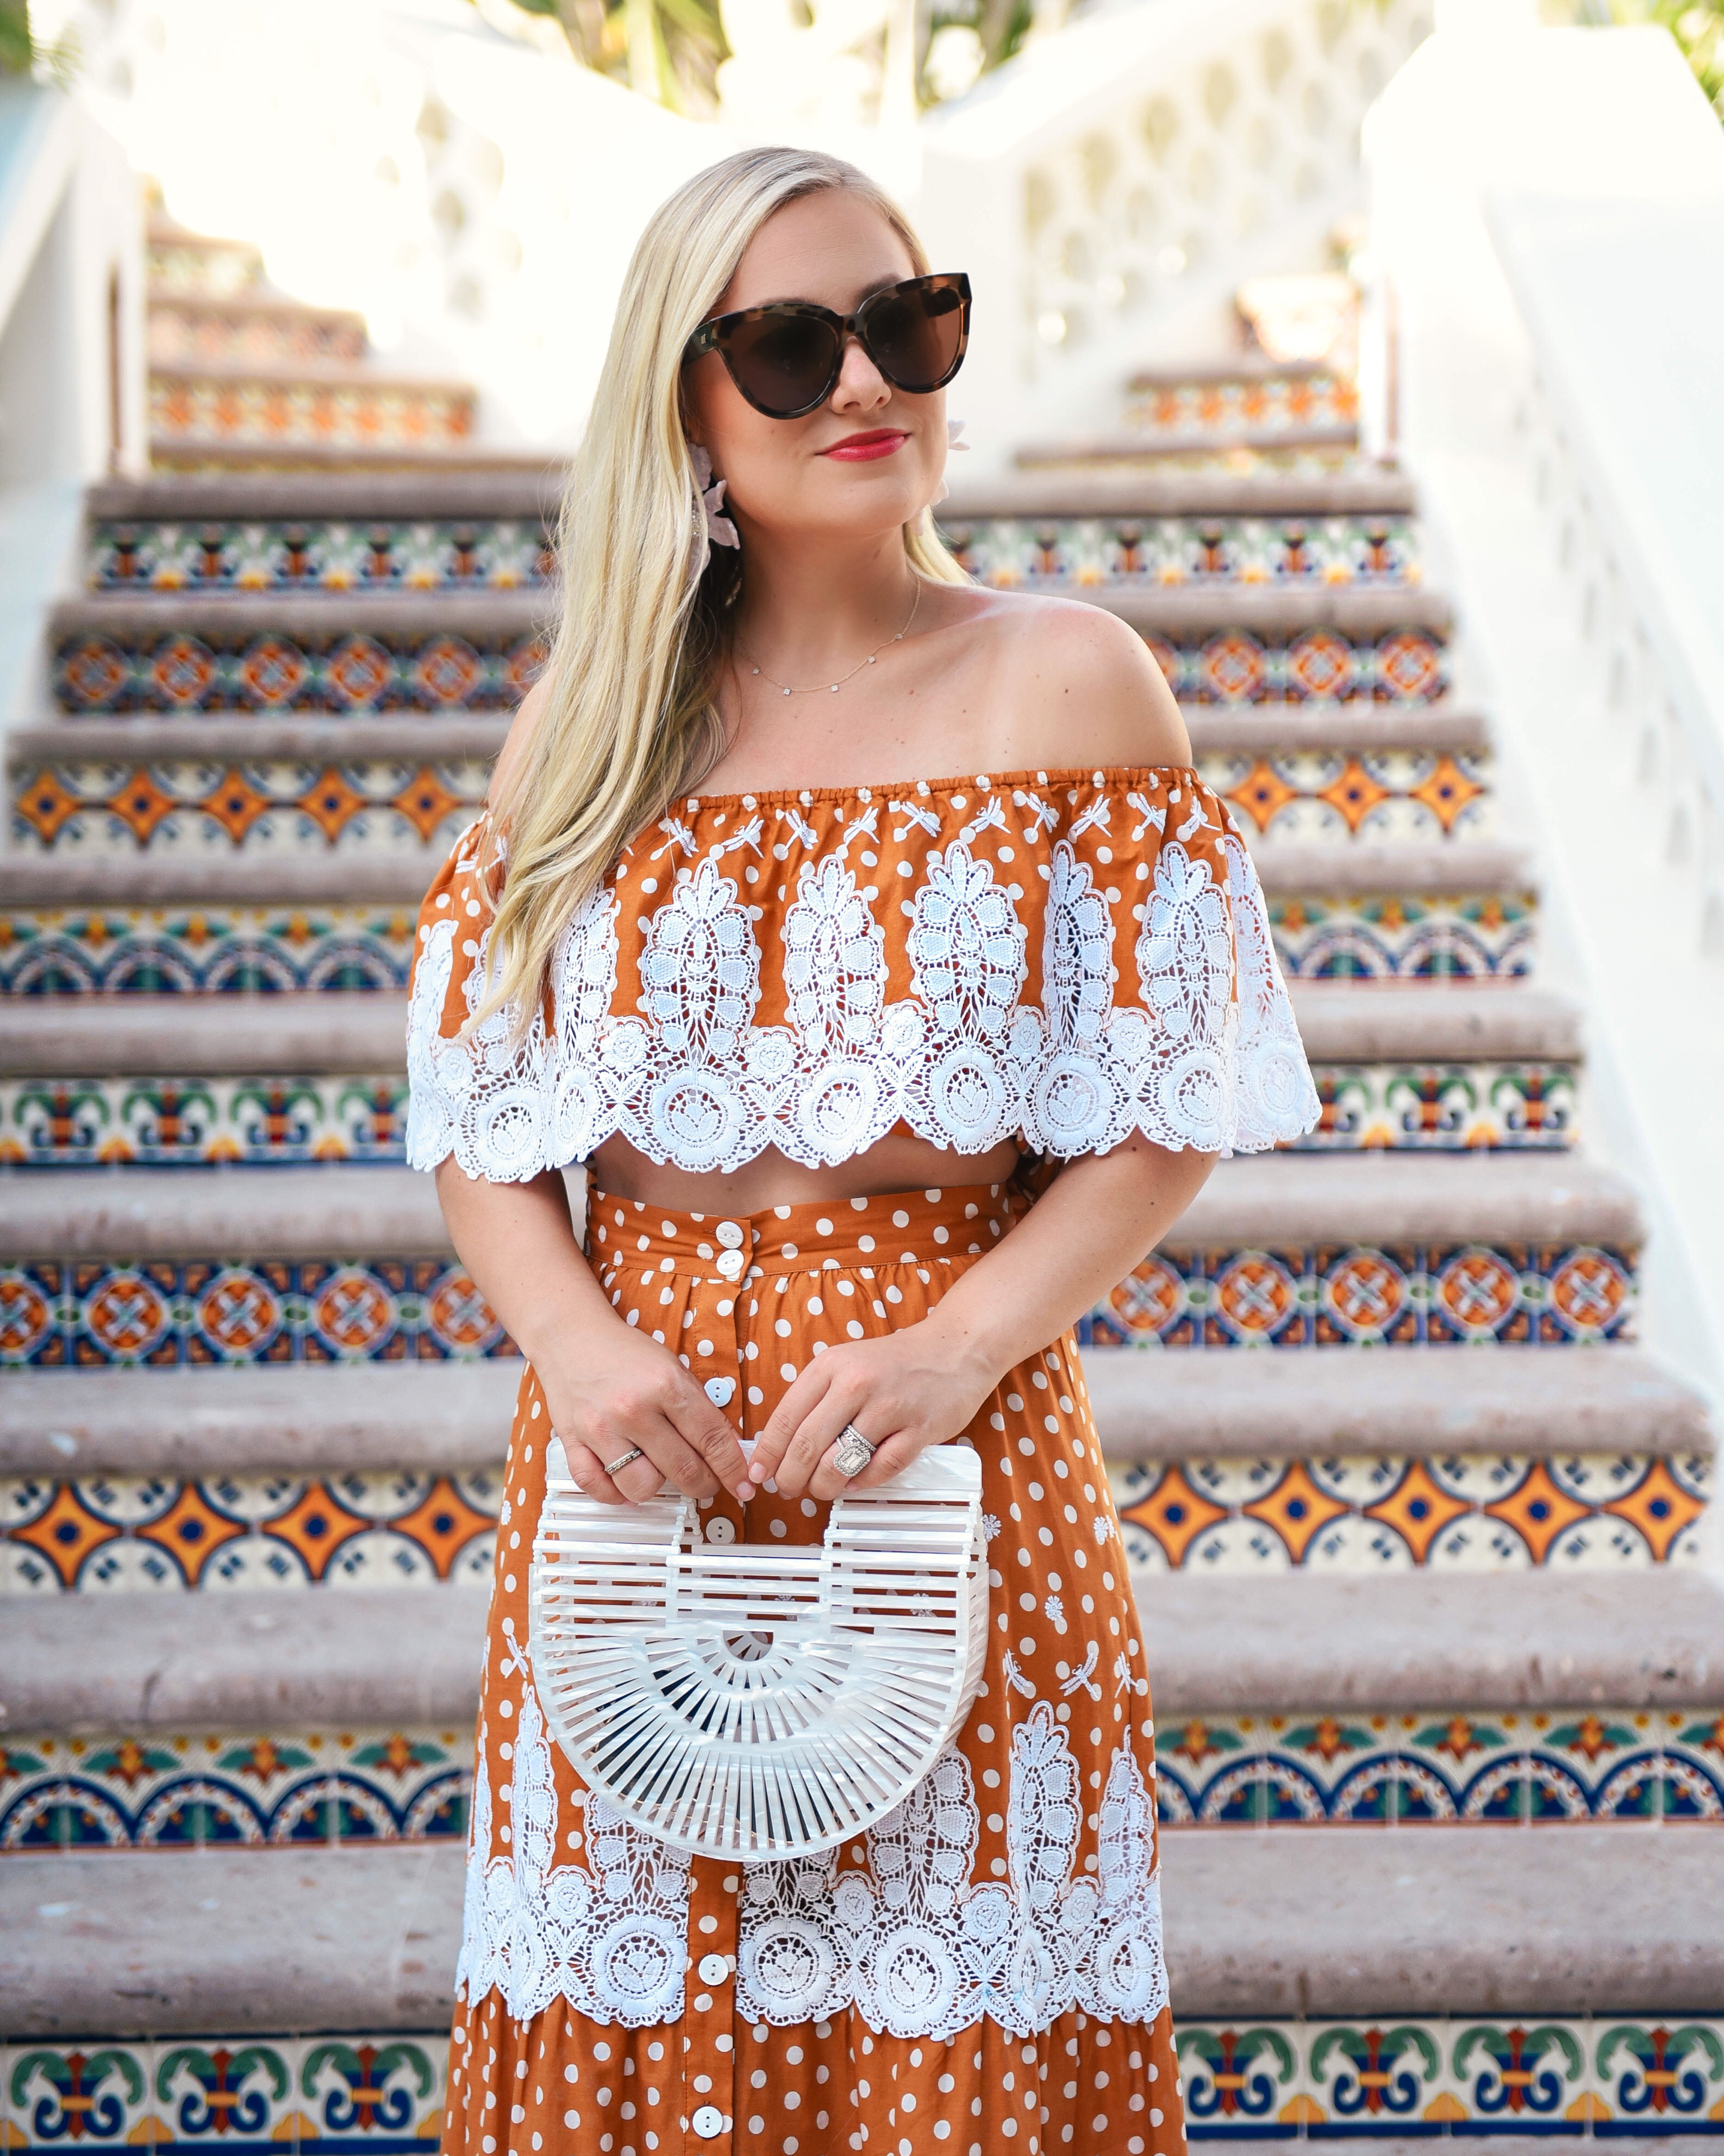 Miguelina-Shopbop-Matching-Set-Lo-Murphy-Miguelina-Orange-Set-Lace-Dress-Cult-Gaia-Bag